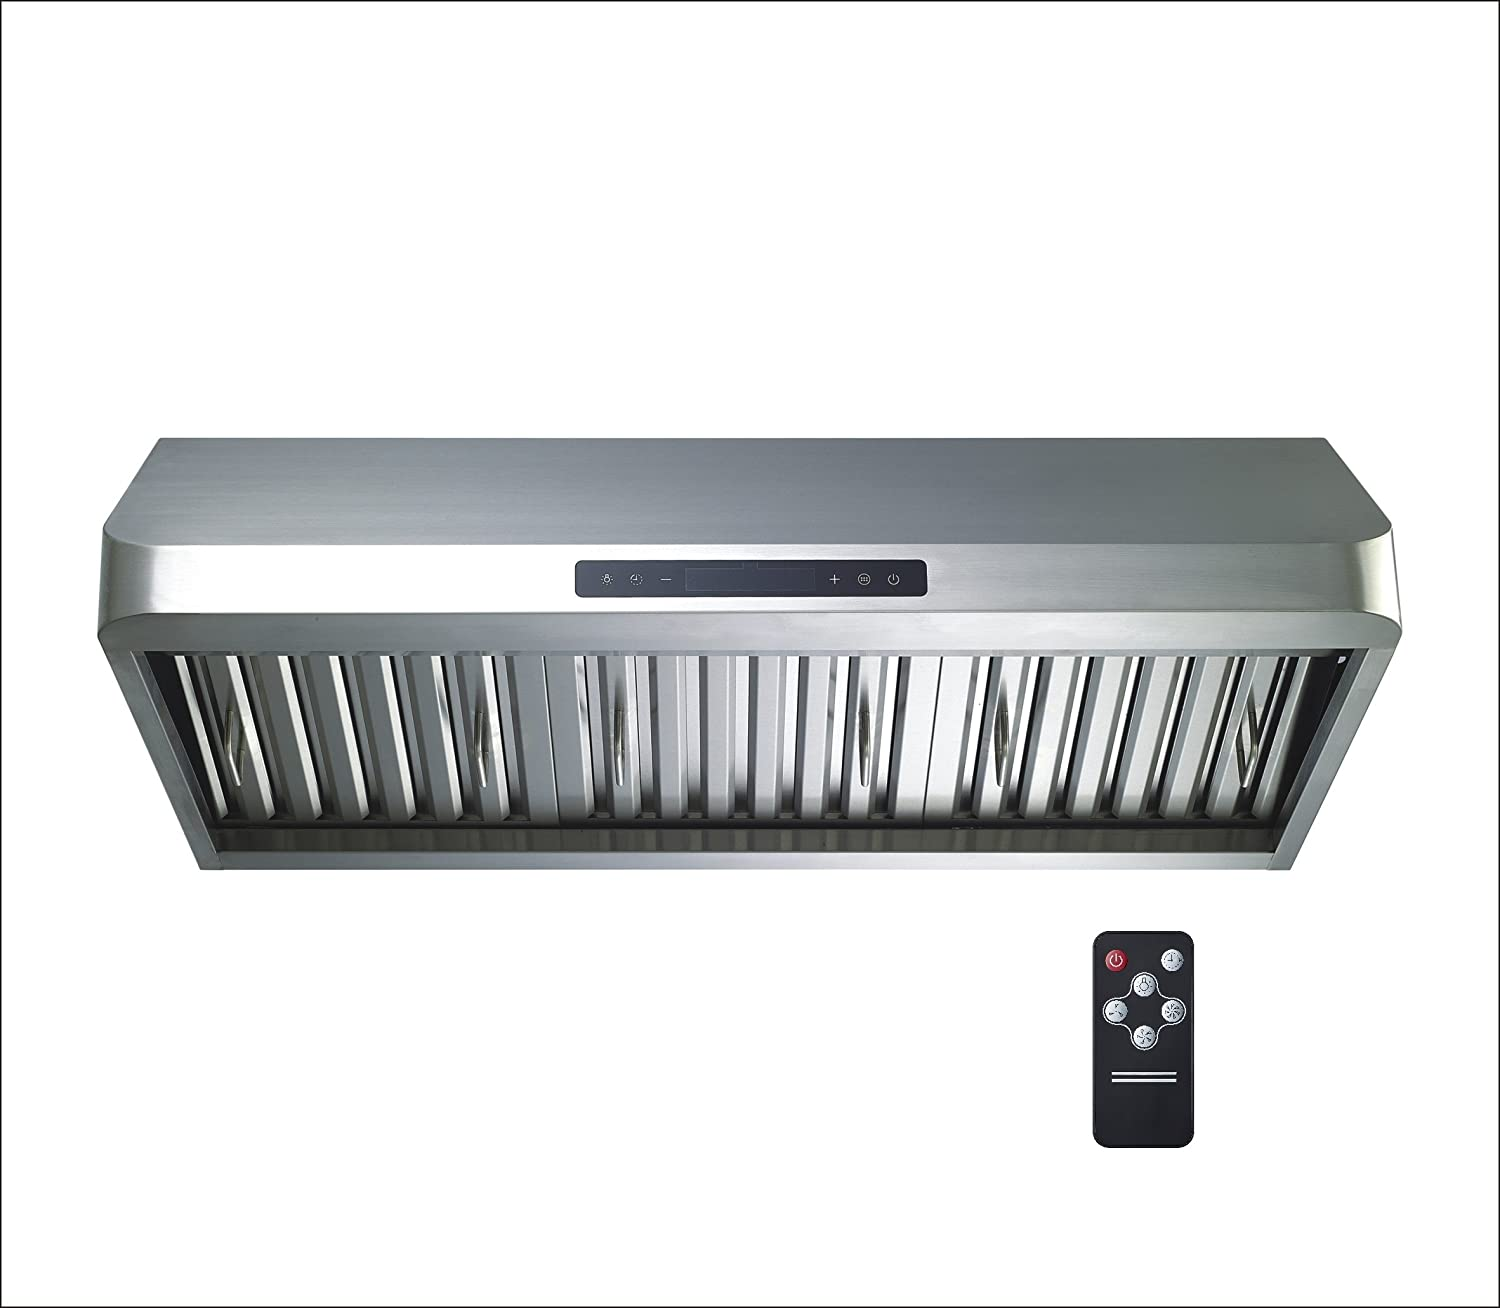 "Winflo New 36"" Ducted Stainless Steel Under Cabinet 600 CFM Air Flow Kitchen Range Hood with Baffle filters, Gas Sensor, Touch Control and Utra Bright LED Lights"